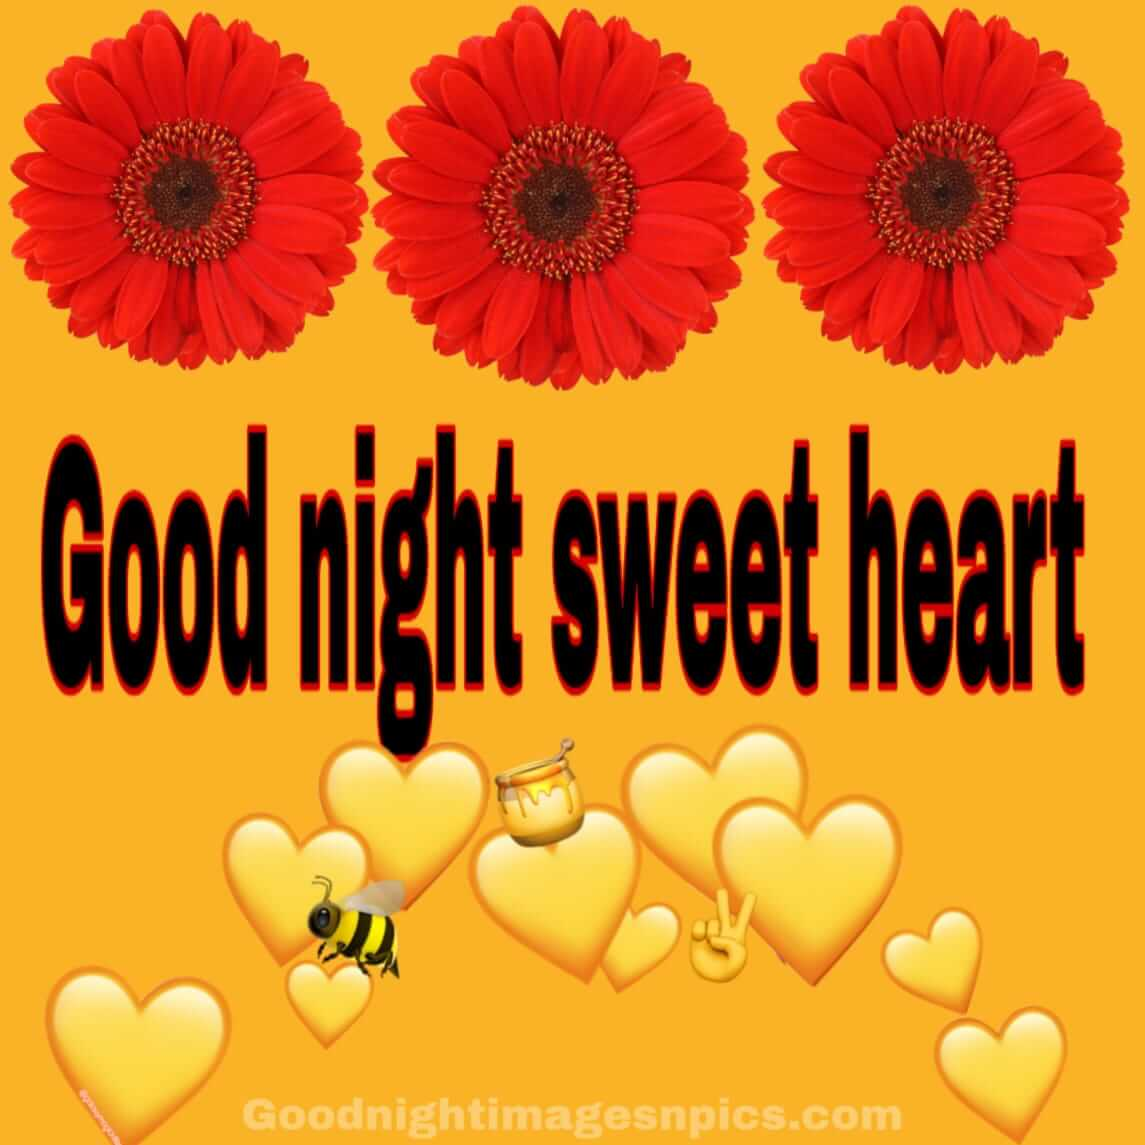 Lovely Images of Good Night